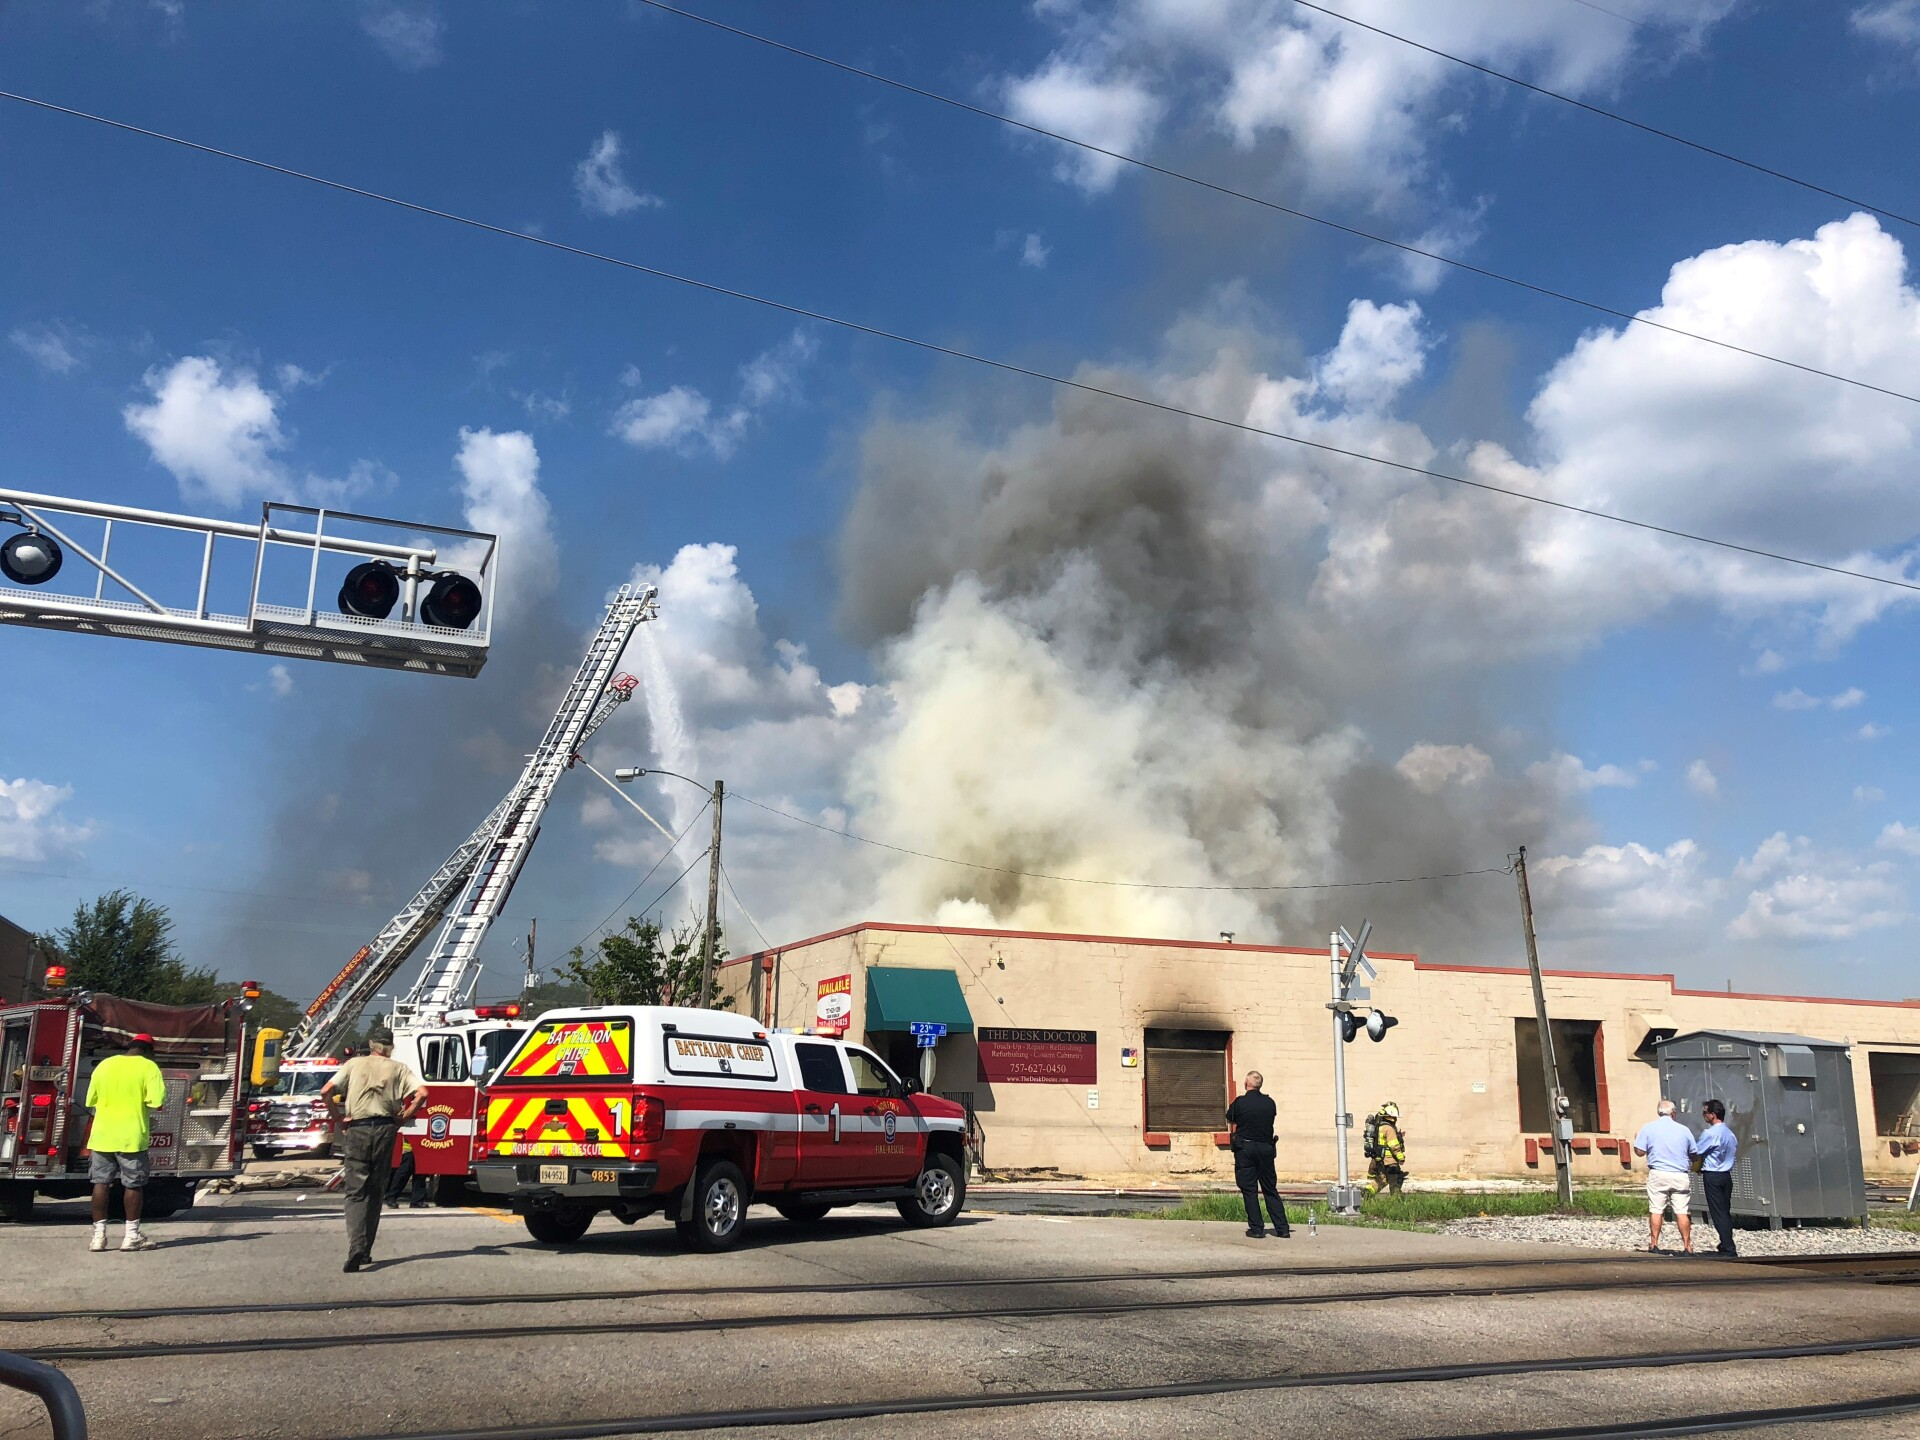 Photos: Firefighters pulled from large commercial fire inNorfolk